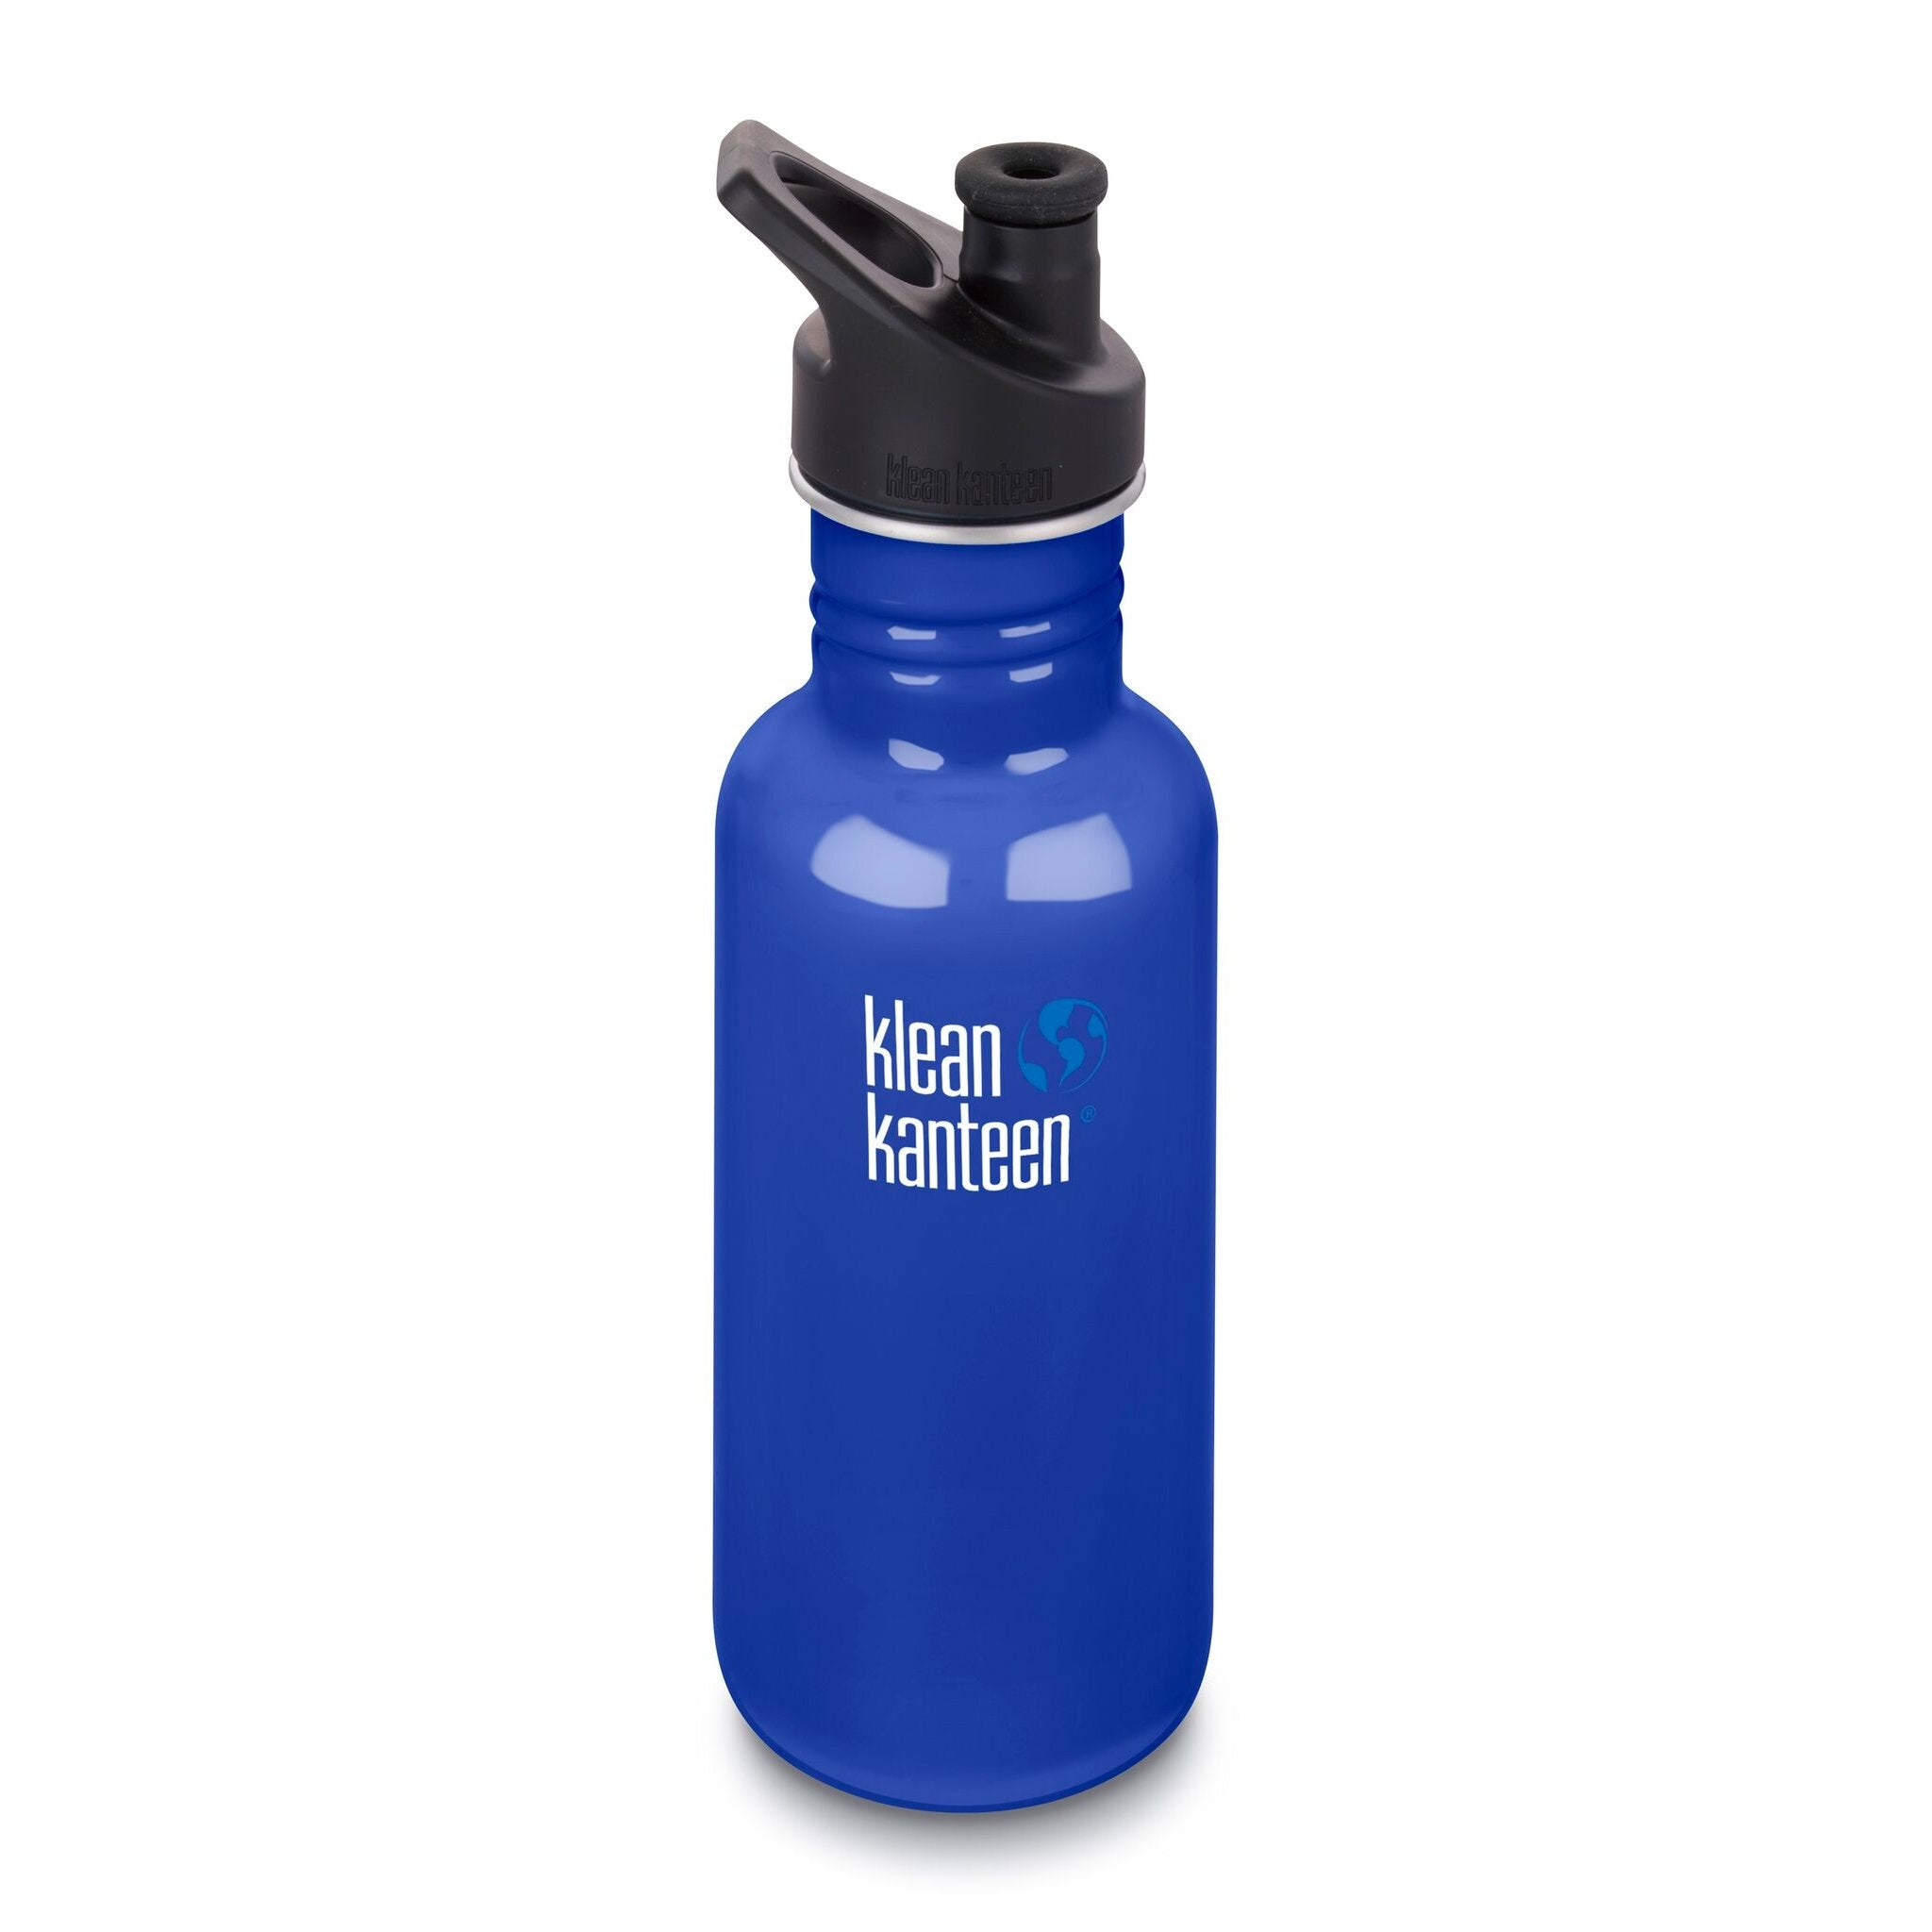 Klean Kanteen Stainless Steel Classic Water Bottle Klean Kanteen Water Bottles 532ml 18oz / Coastal Waters at Little Earth Nest Eco Shop